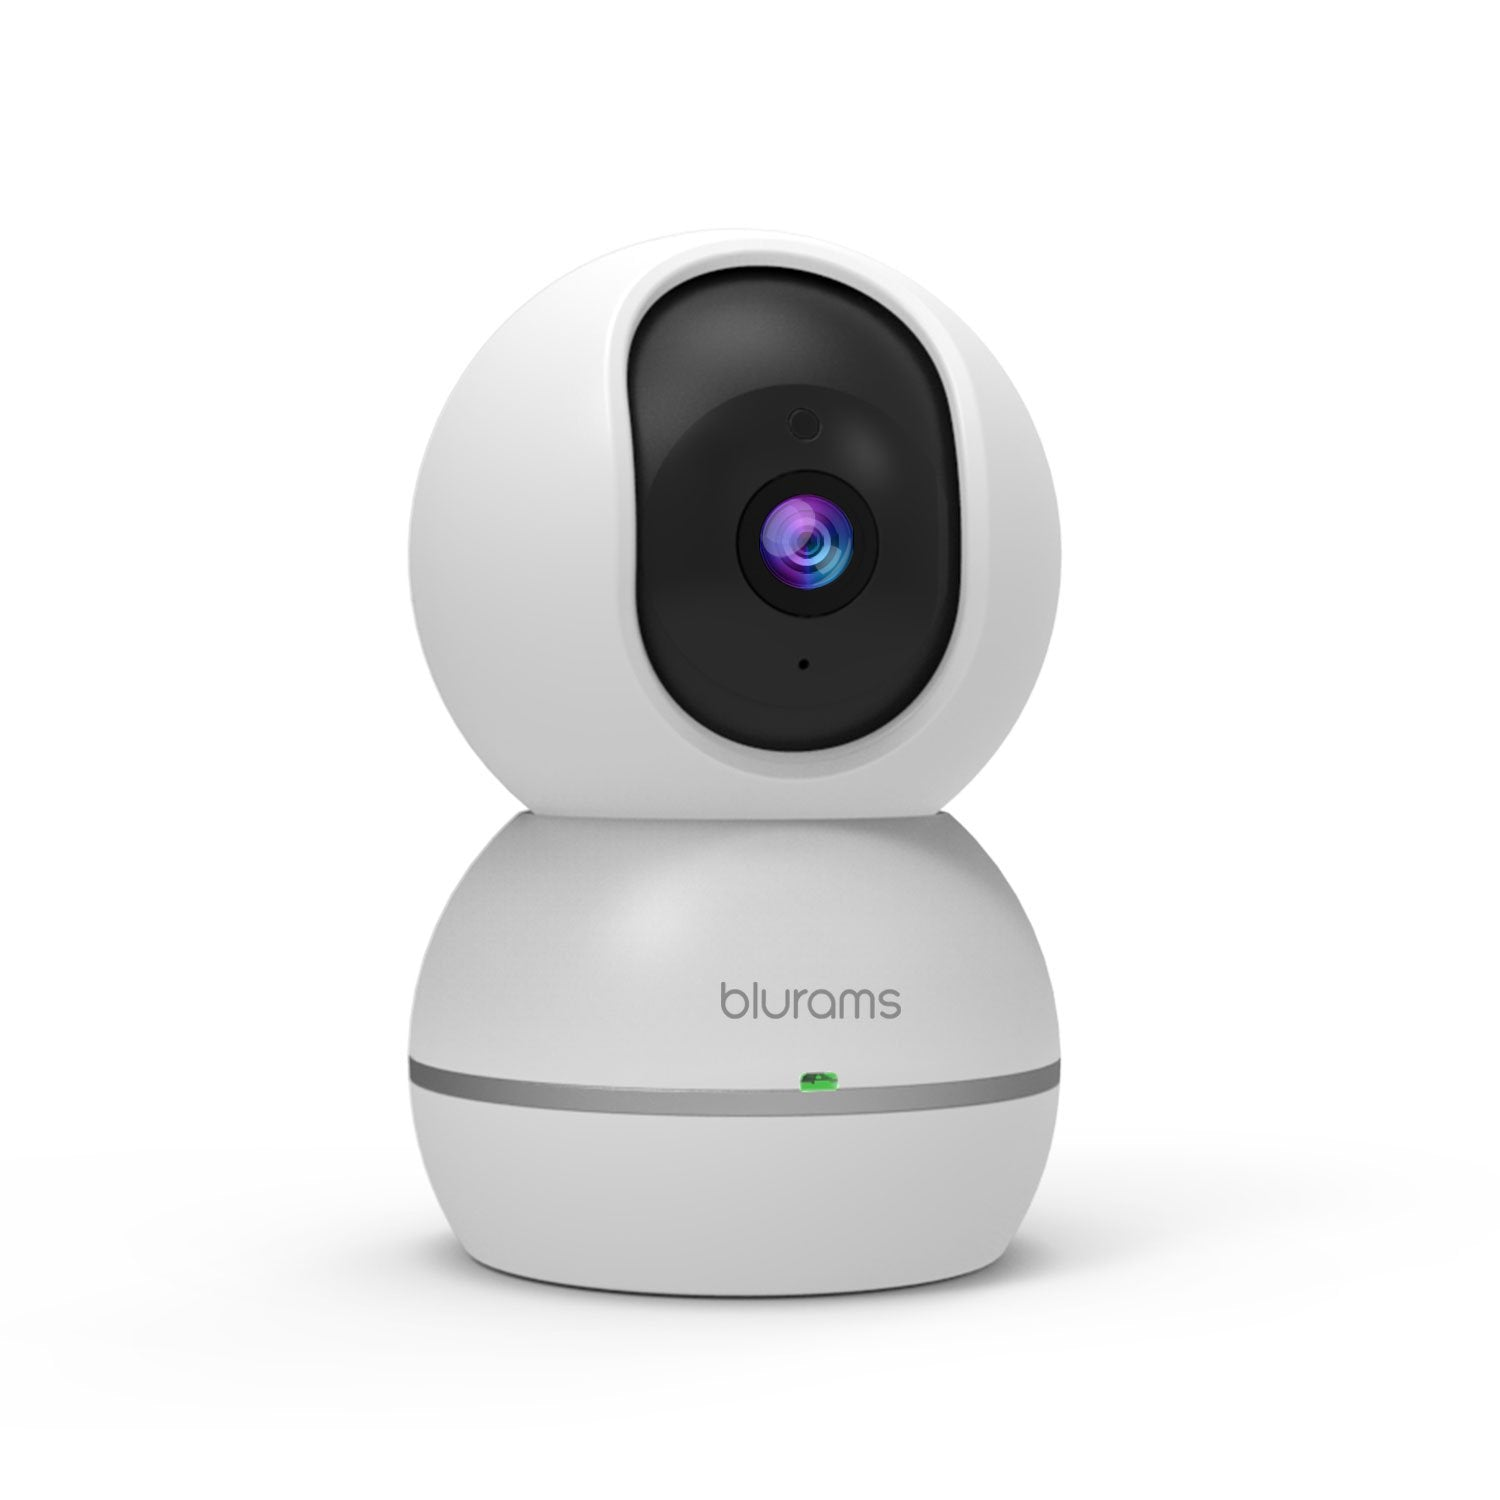 blurams Snowman - Wireless Security IP Camera CCTV System 1080p FHD w/ 360° Coverage - Latest Living